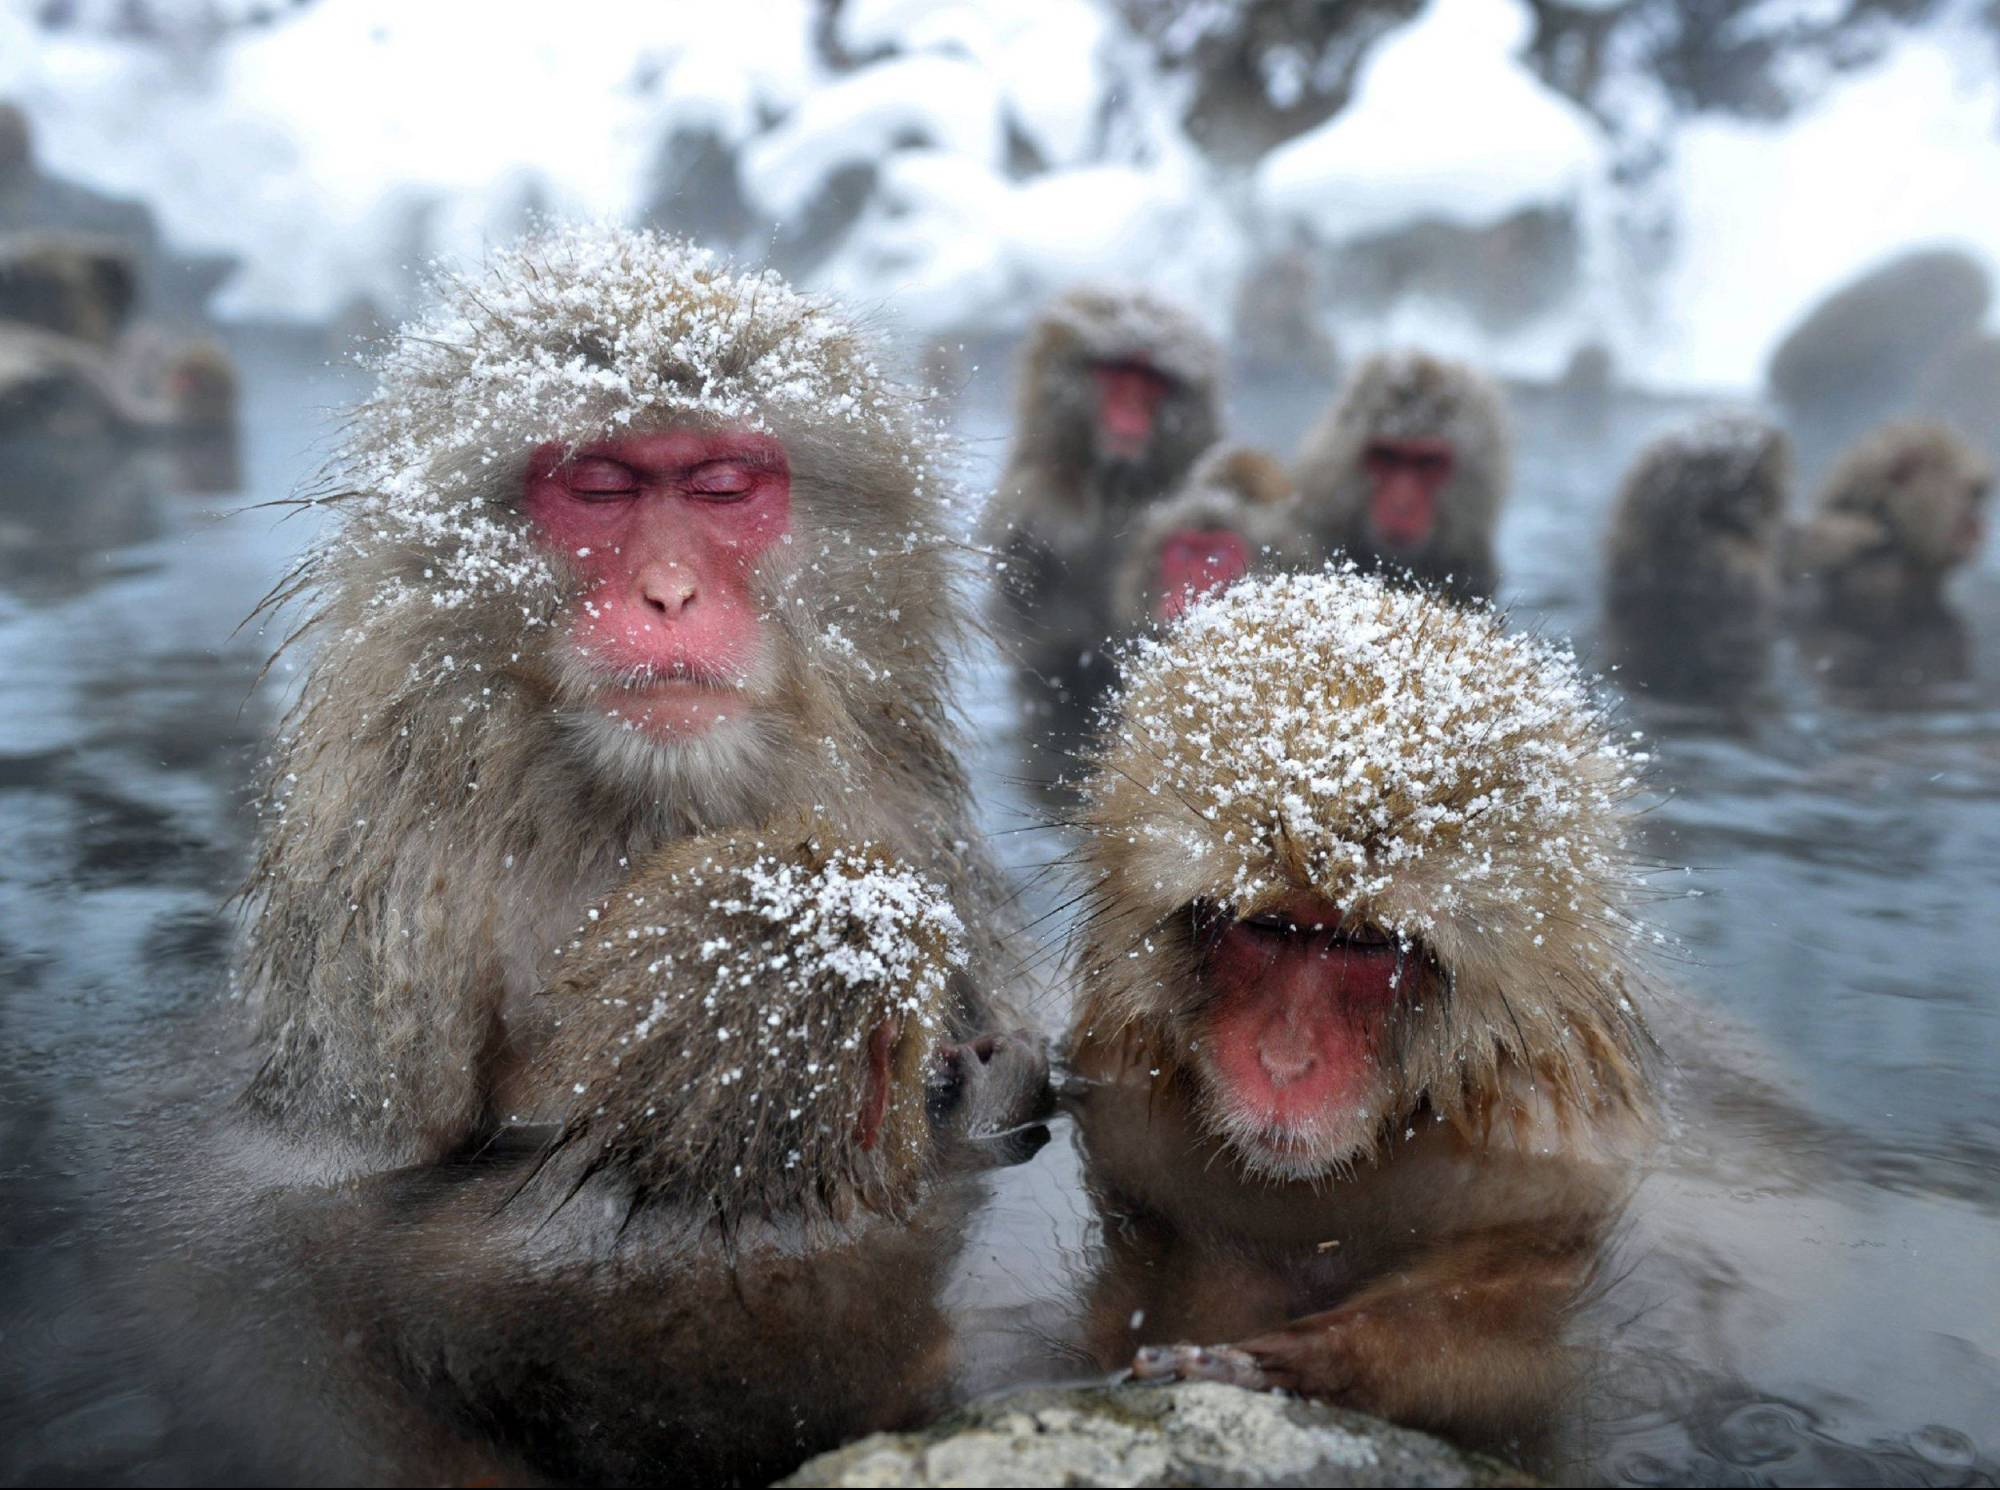 Not as cute as they first might appear: A troop of Japanese macaques sit in an open-air hot spring at the Jigokudani Monkey Park near the town of Yamanouchi, Nagano Prefecture, in January 2012. | AFP-JIJI